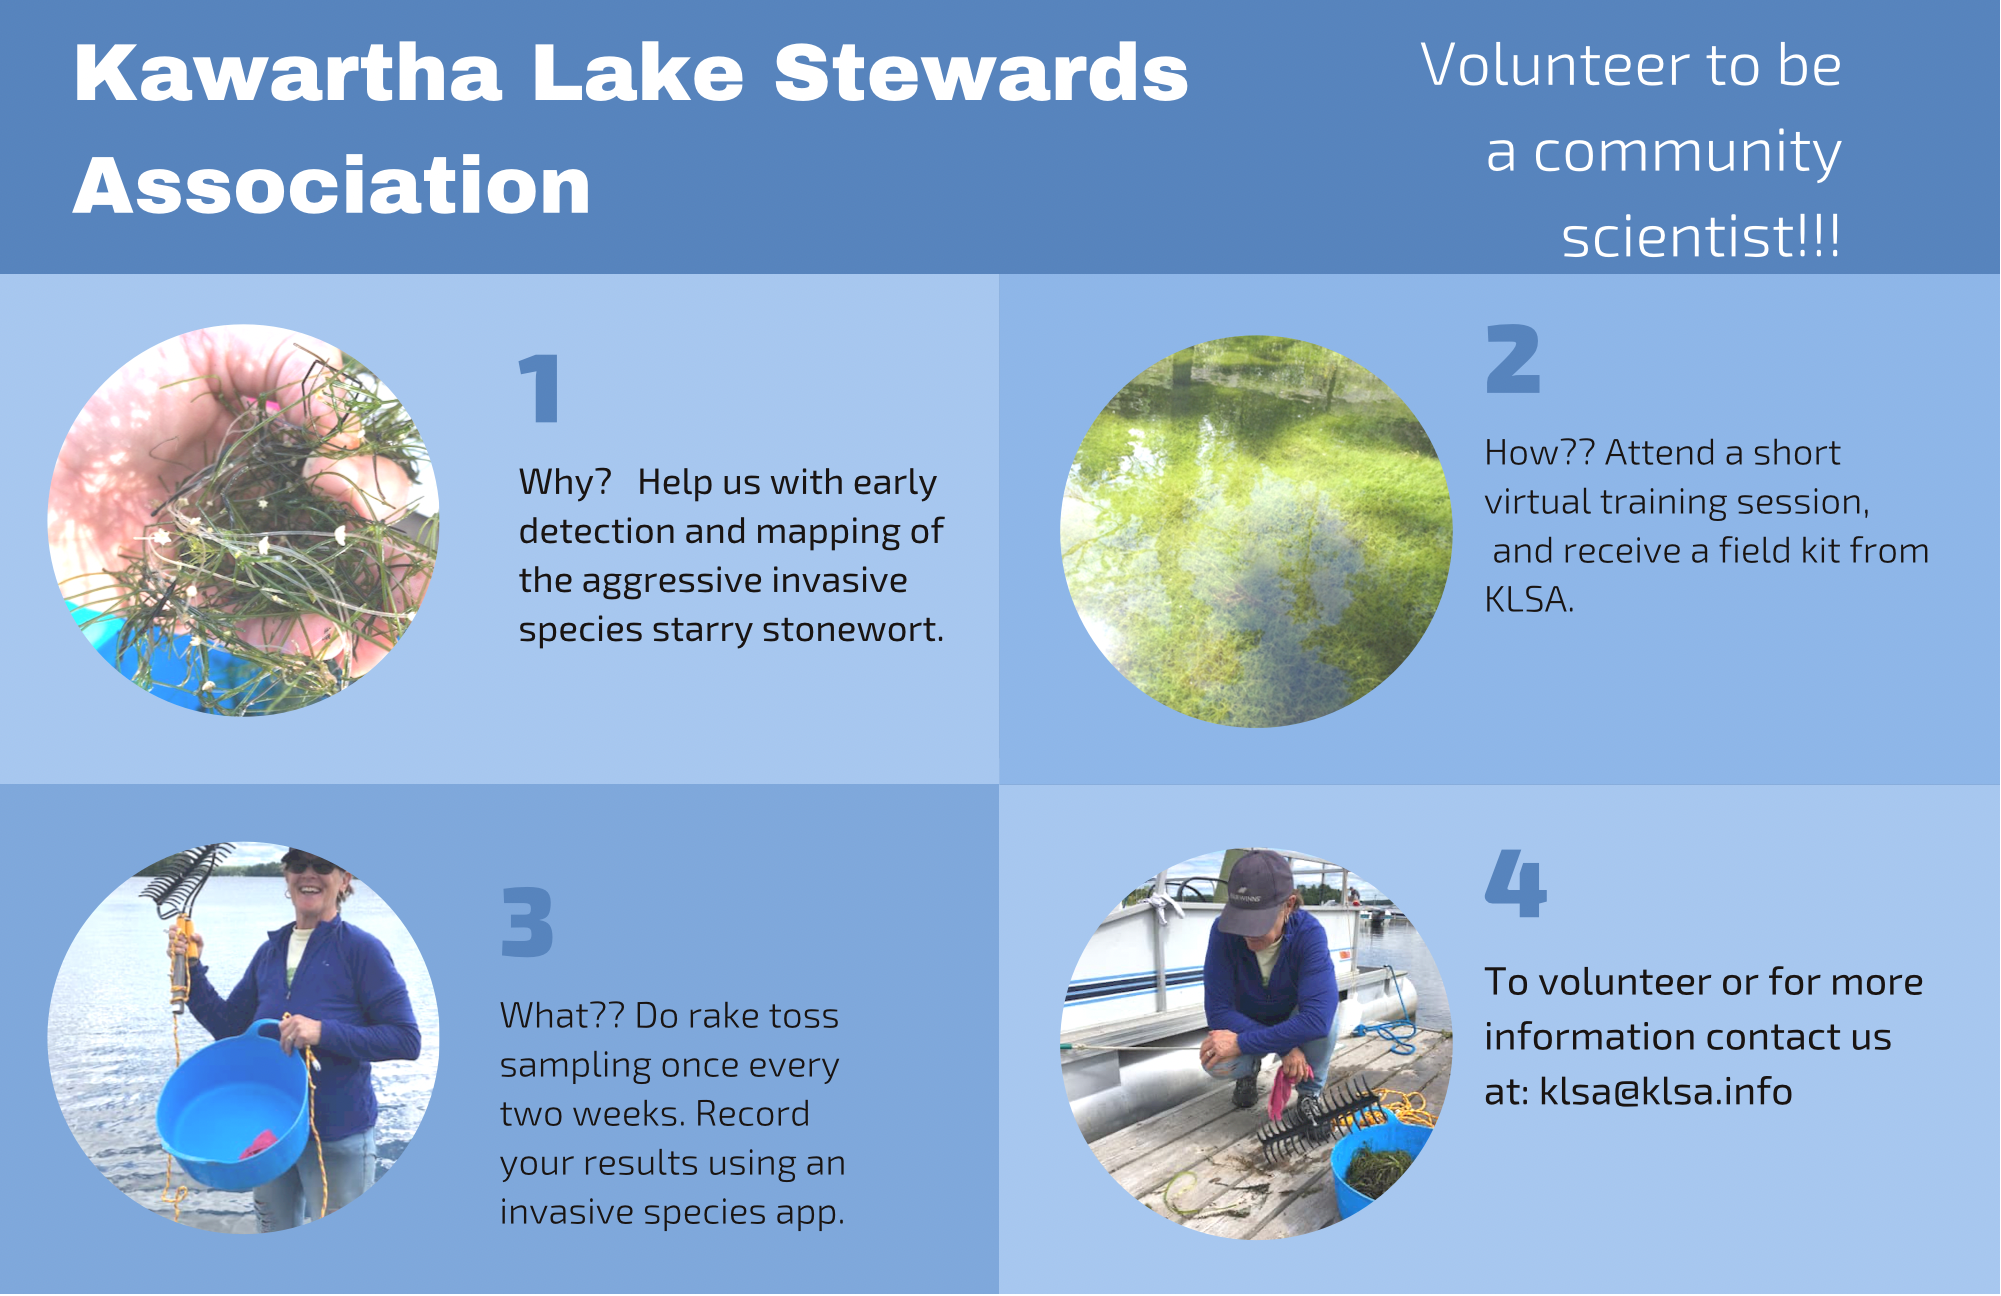 Infographic about volunteering to be a community scientist